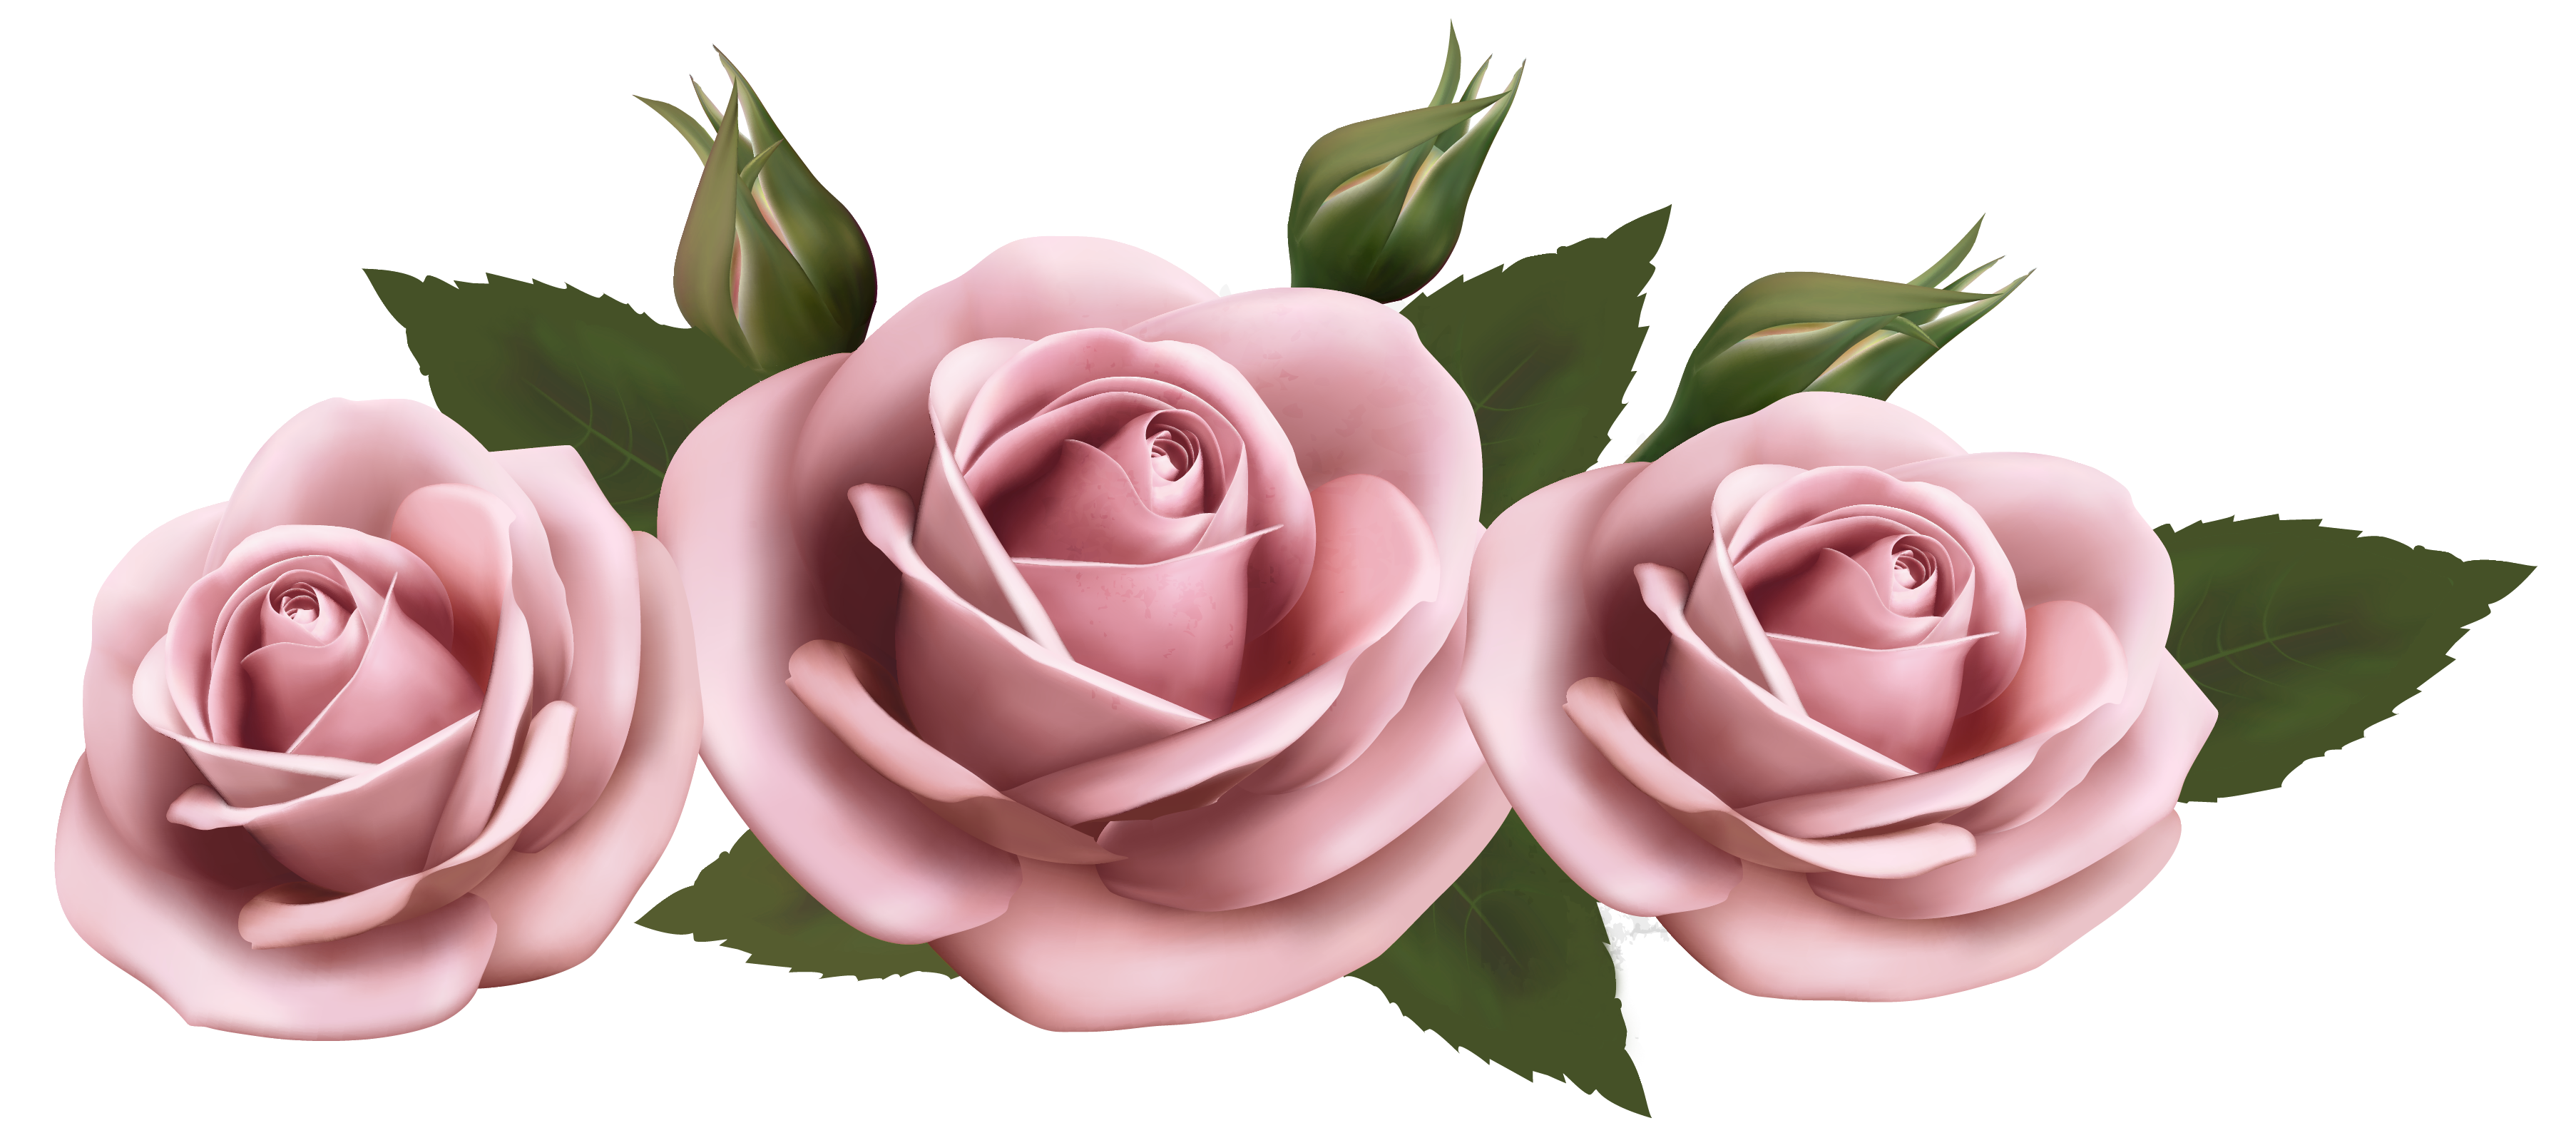 Beautiful_Transparent_Pink_Roses_PNG_Picture.png (3612